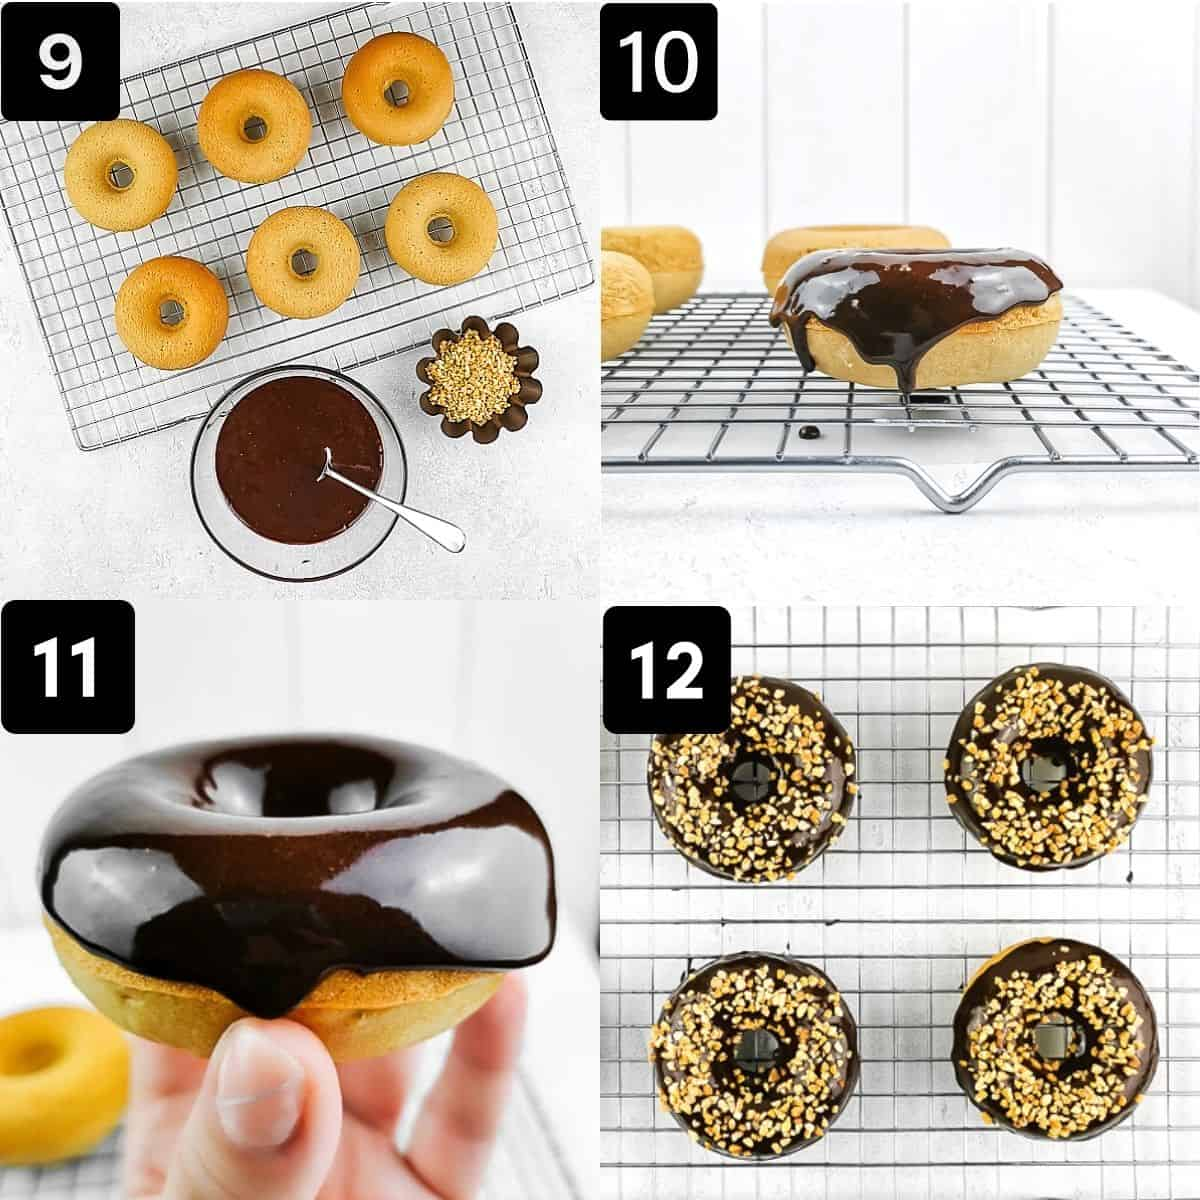 frosting the donuts with chocolate glaze and crunchy almonds